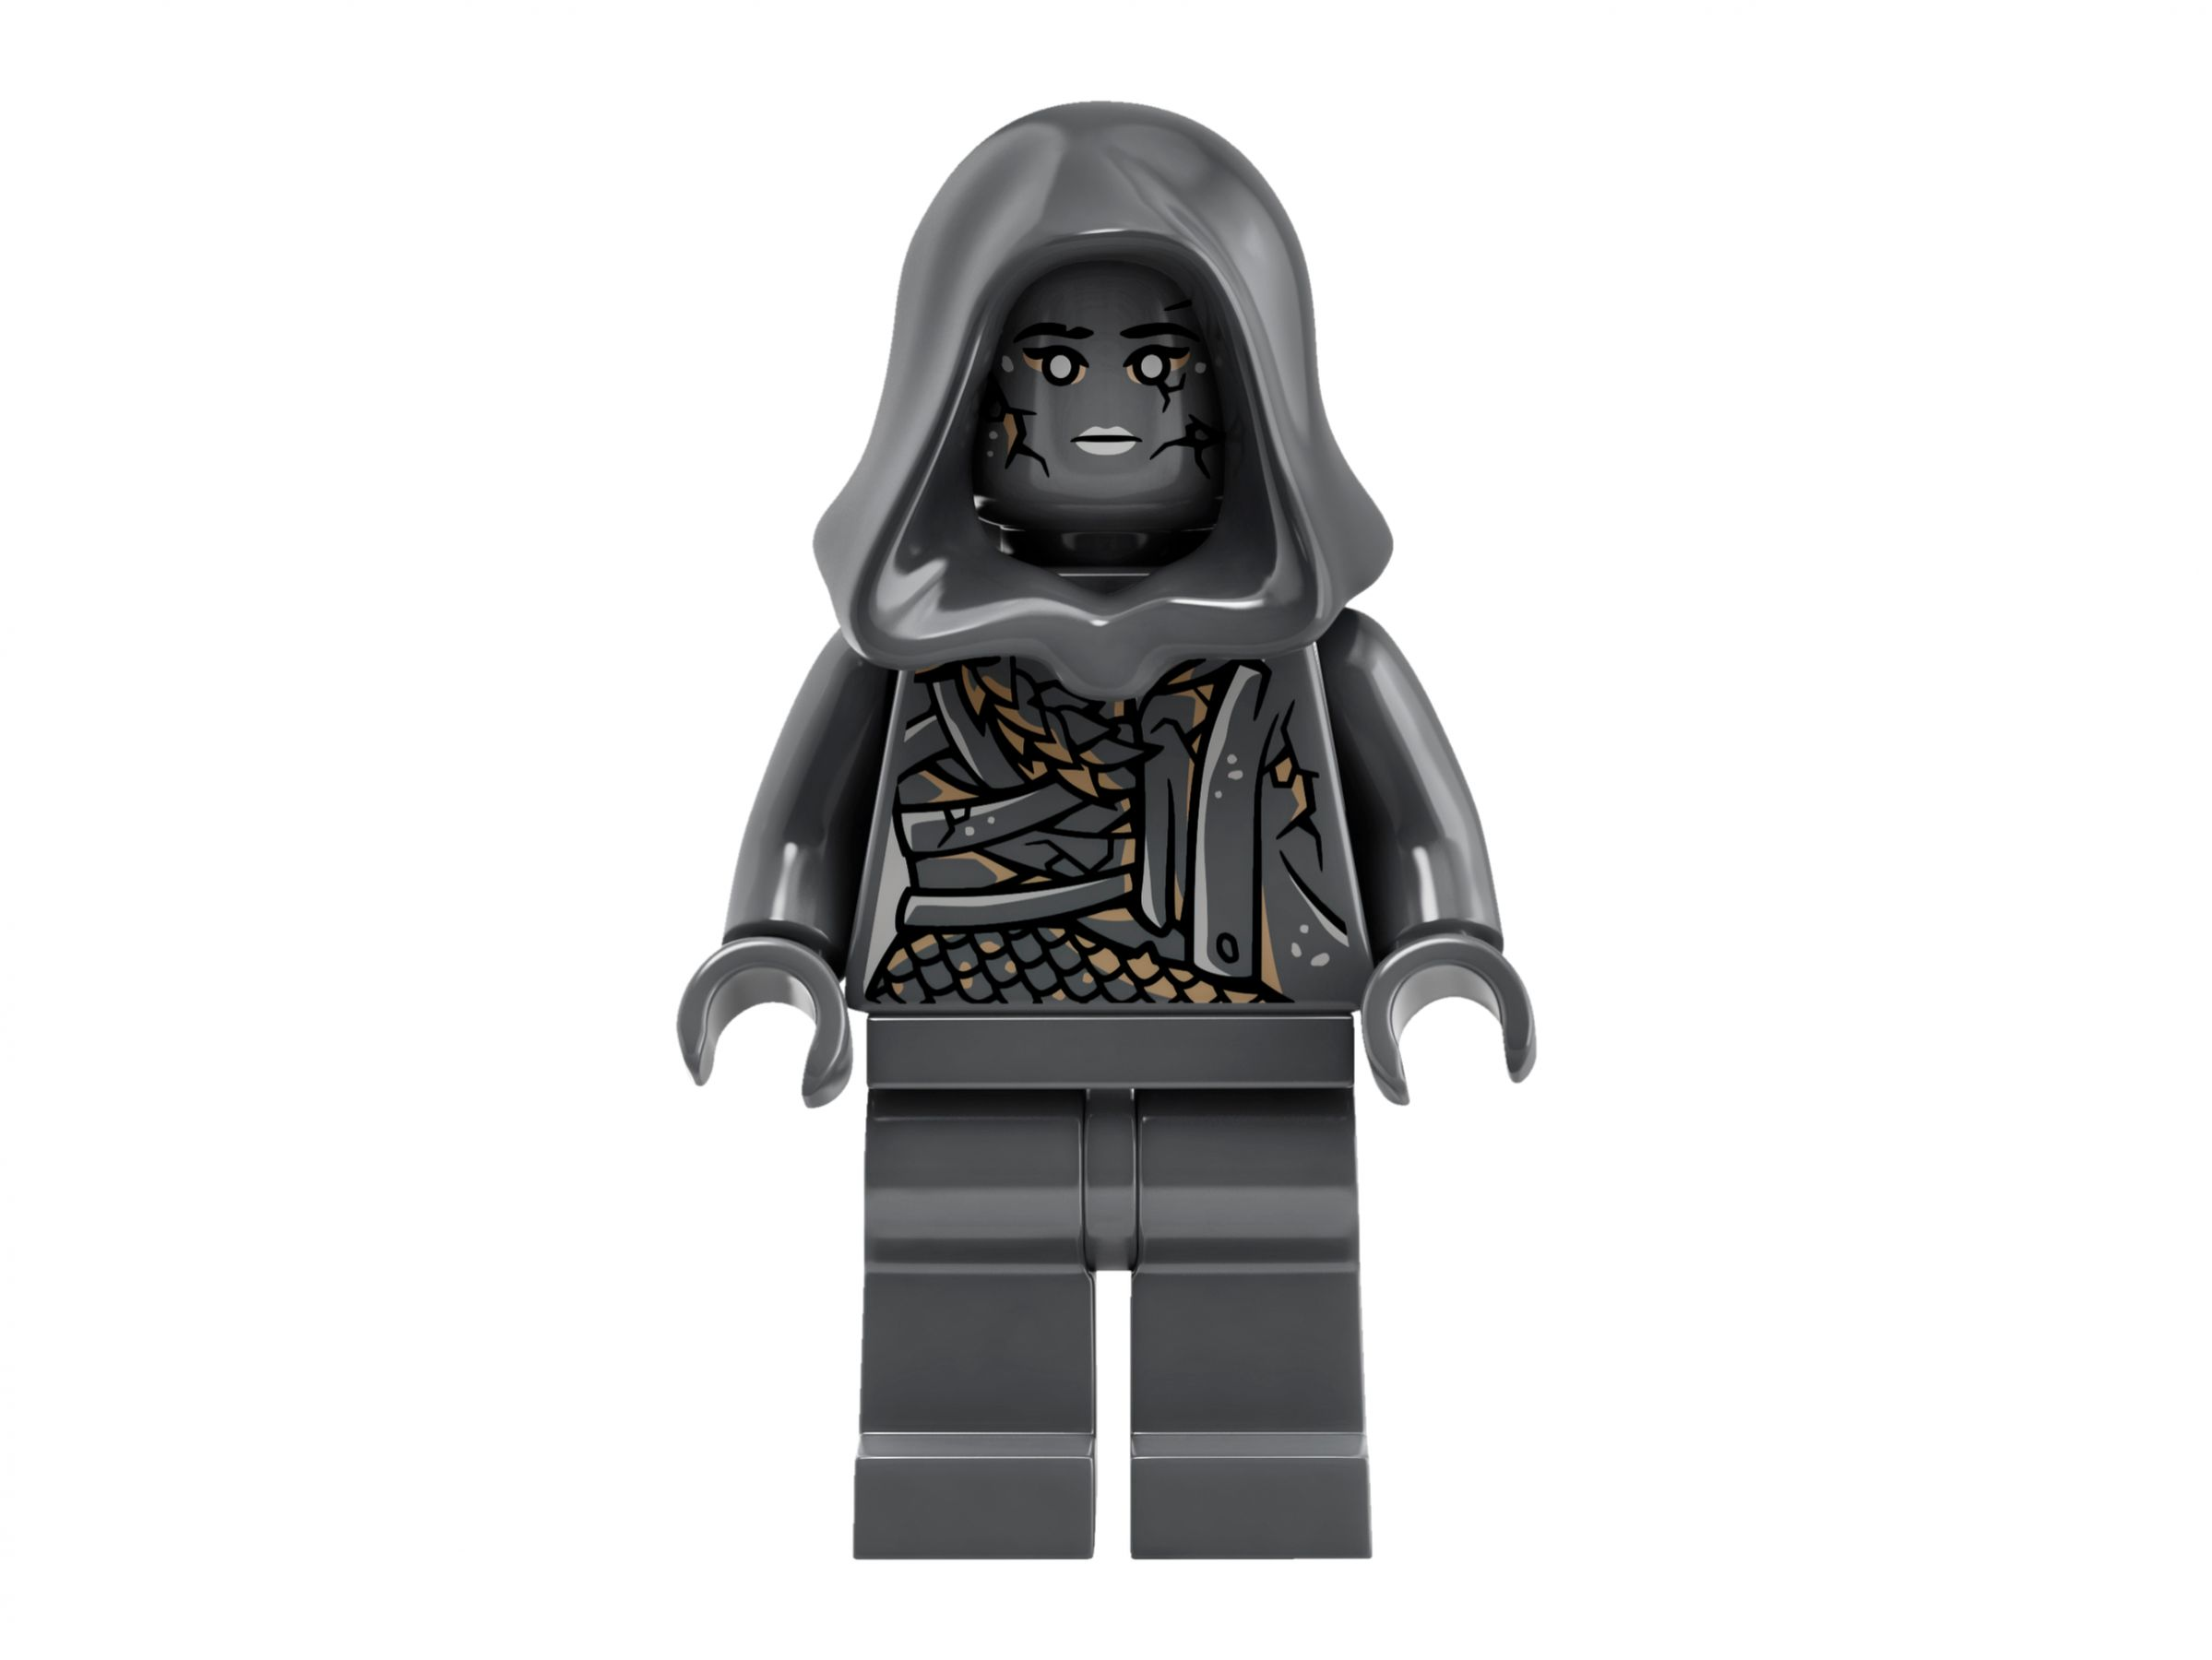 LEGO Advanced Models 71042 Silent Mary LEGO_71042_alt15_Silent_Mary.jpg